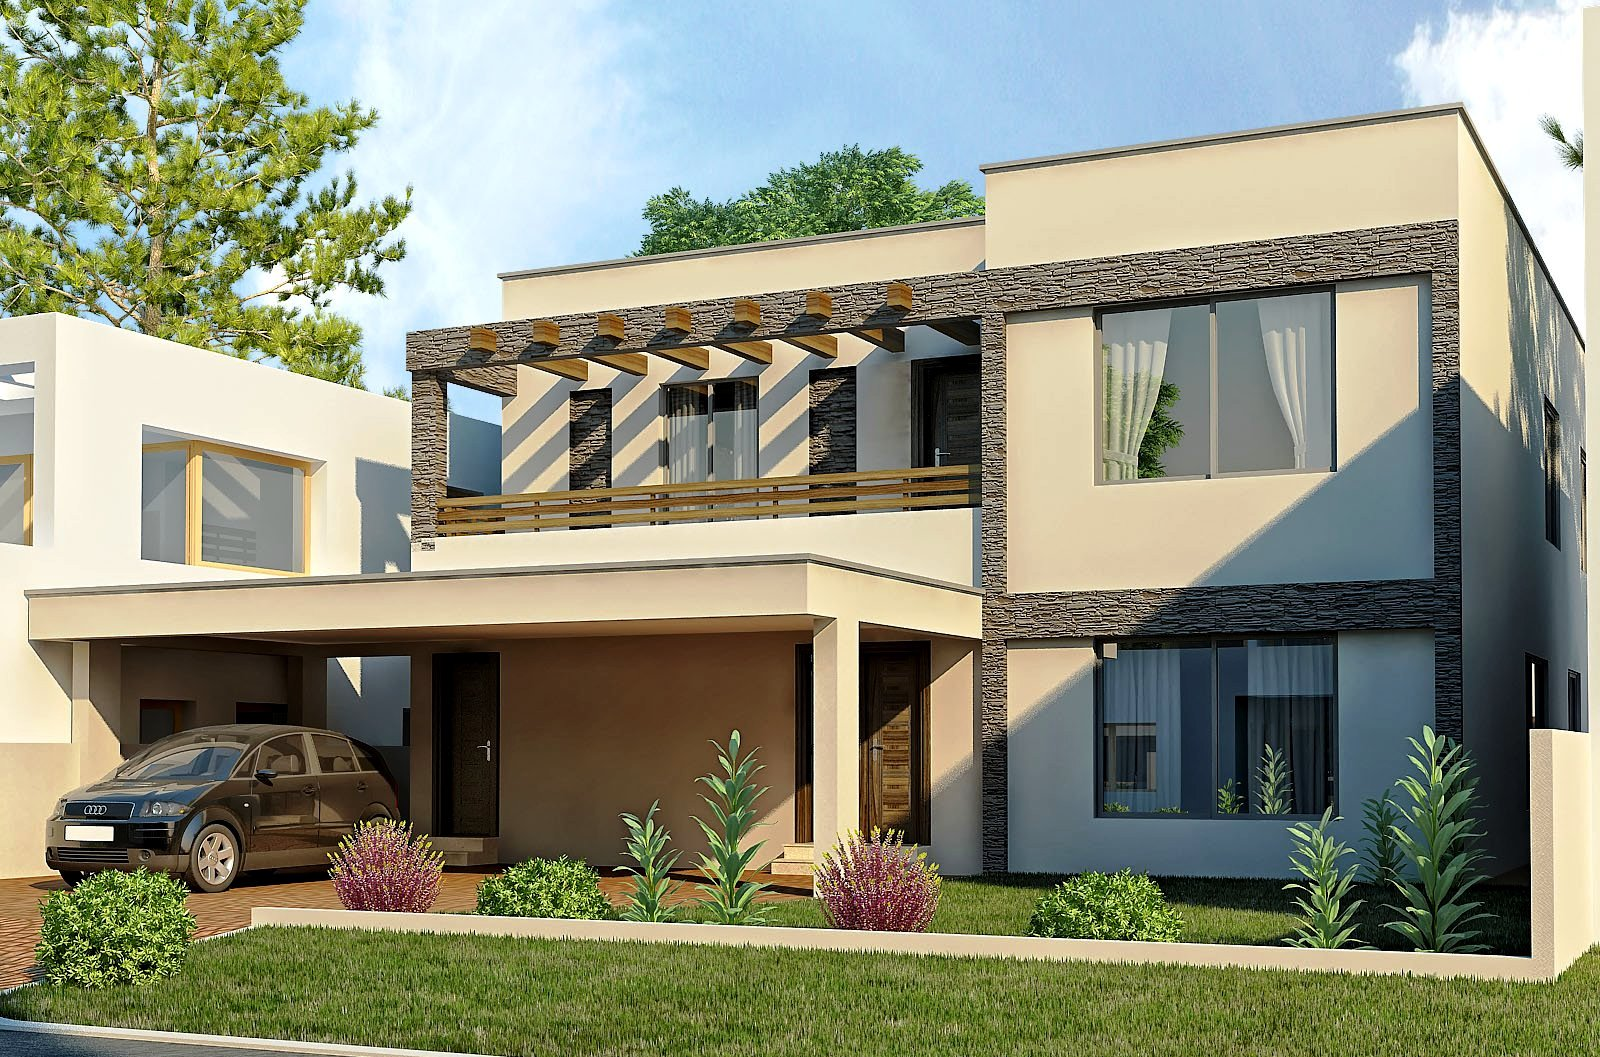 New home designs latest modern homes exterior designs views for Best modern house designs